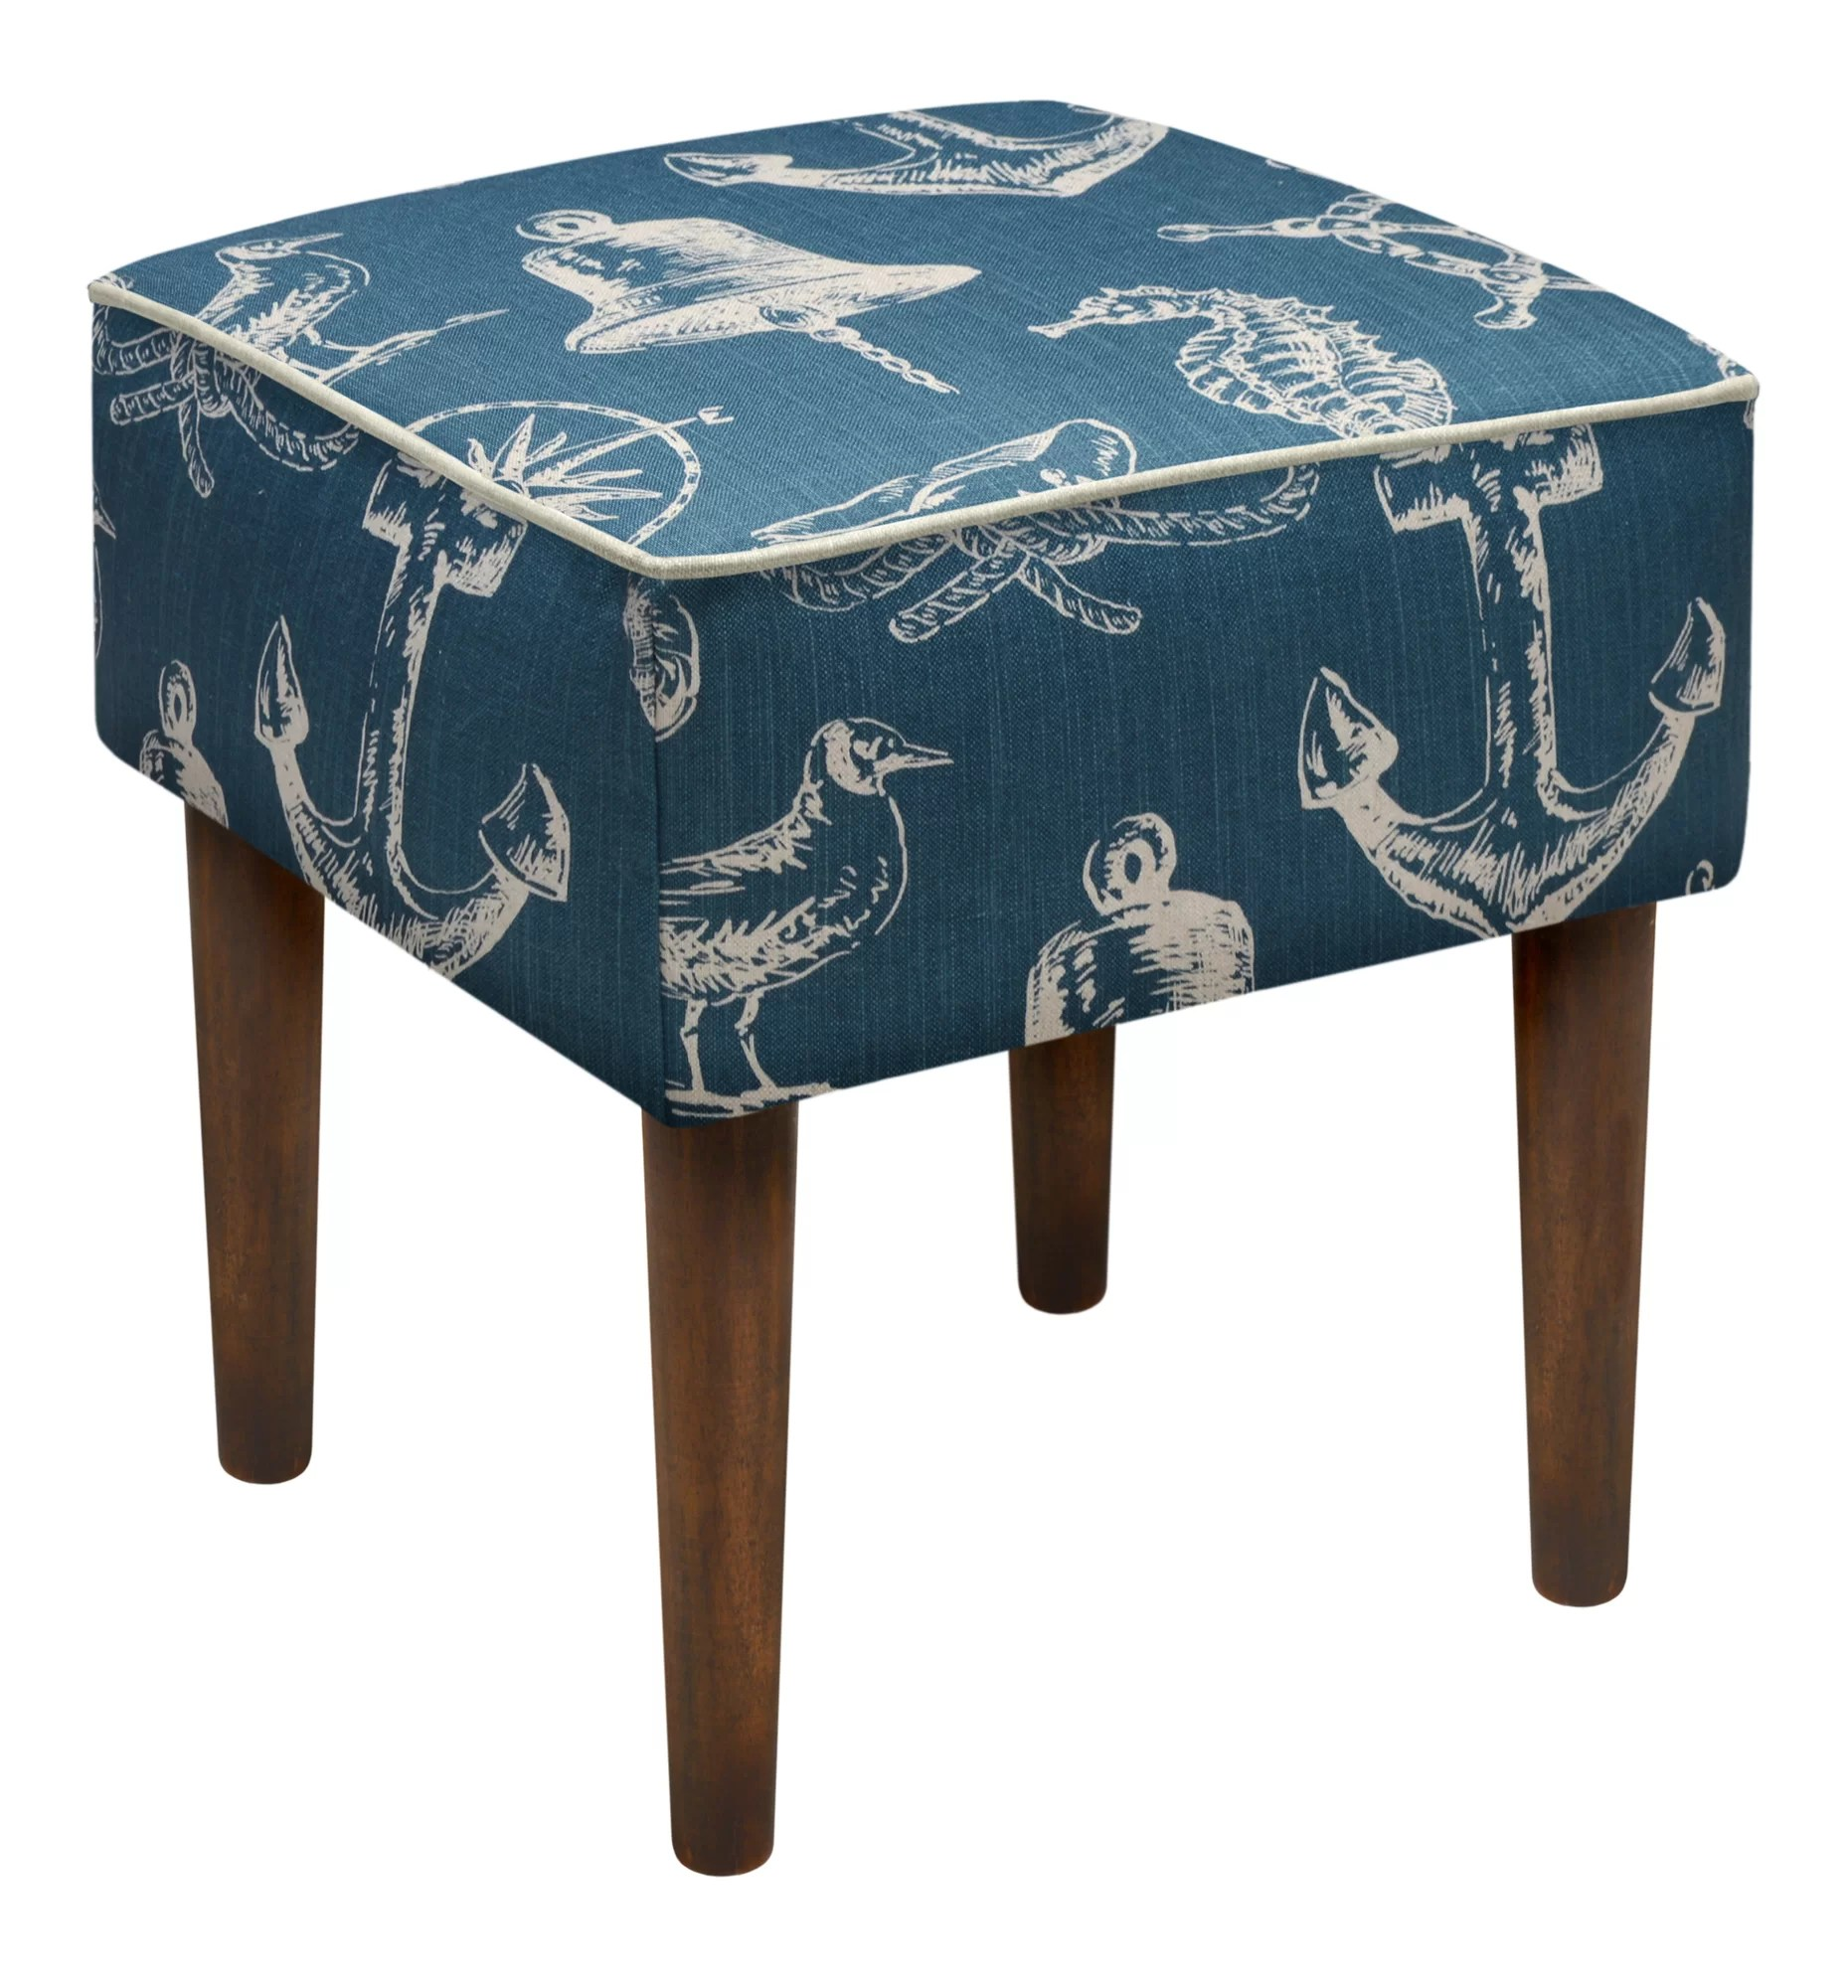 Upholstered Vanity Chair 123 Creations Nautical Upholstered Modern Vanity Stool Ebay